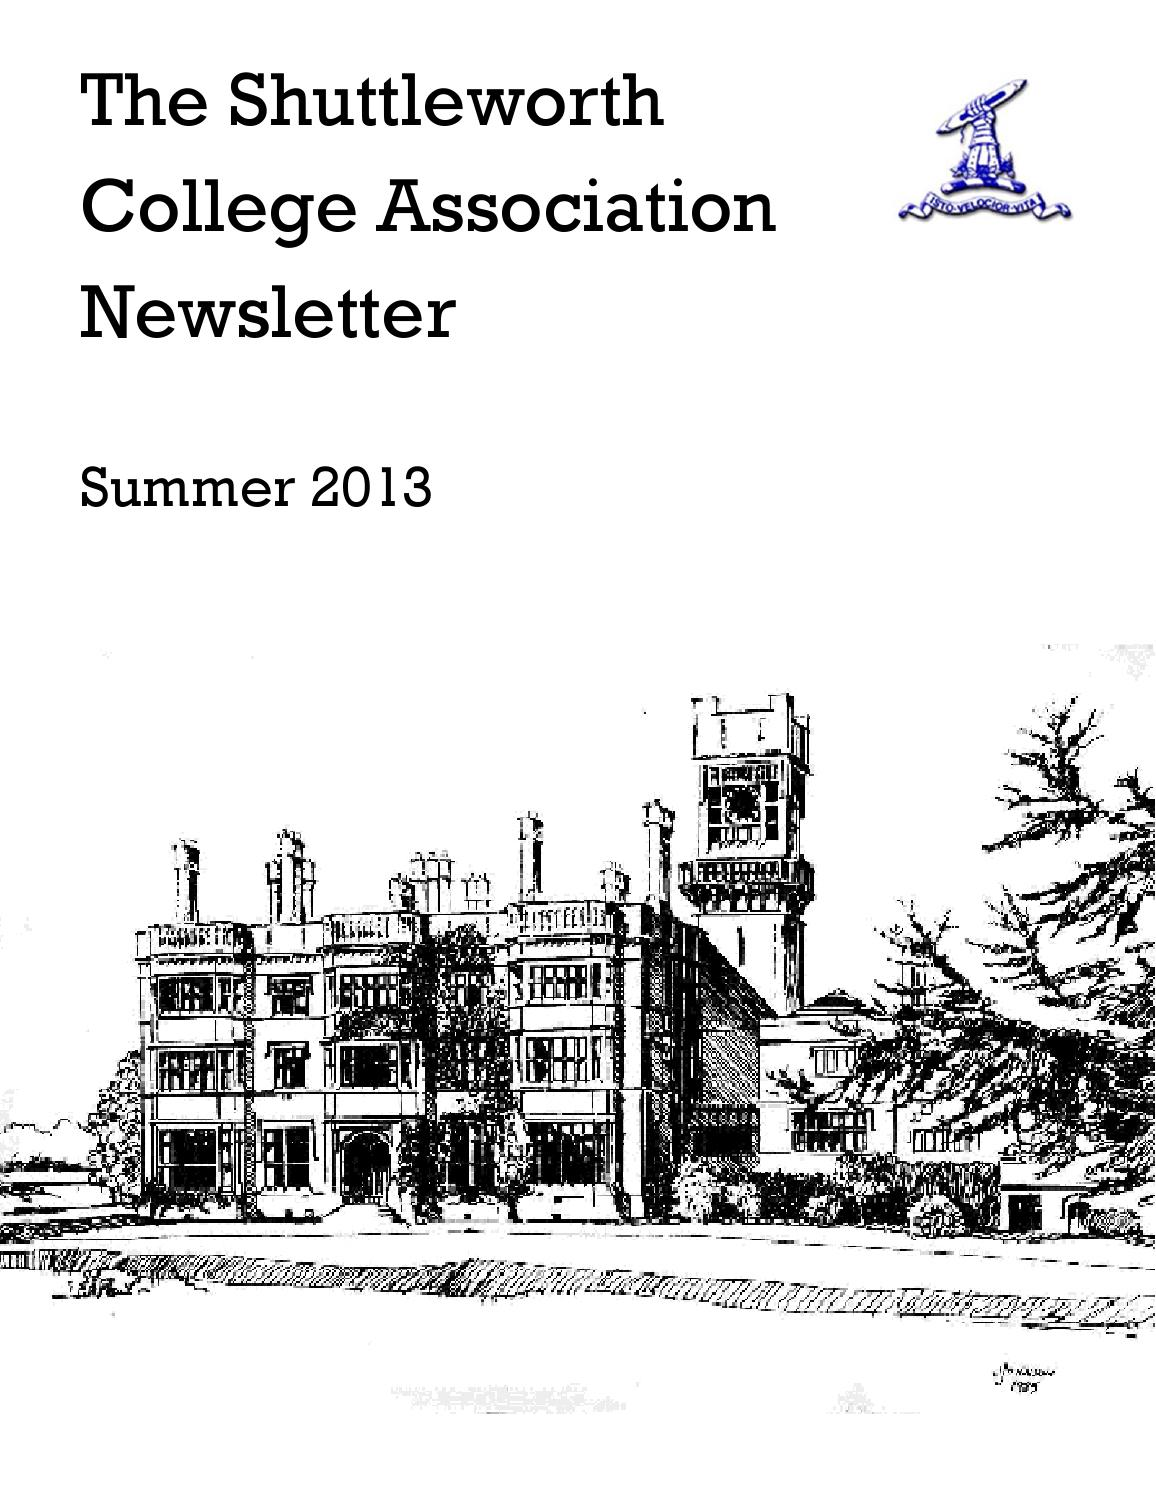 Shuttleworth College Association Newsletter by The Bedford